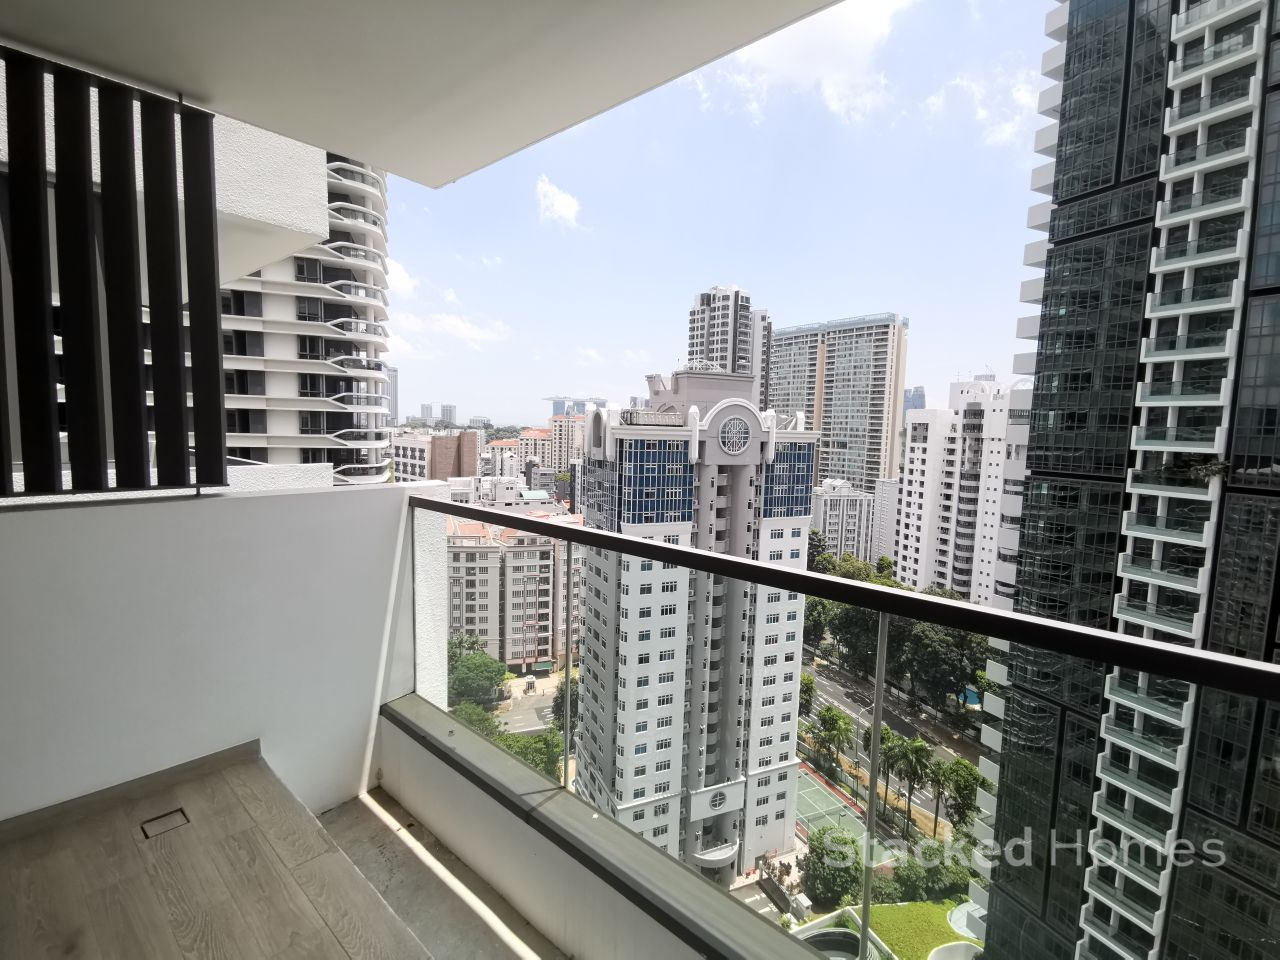 8 st thomas 2 bedroom balcony